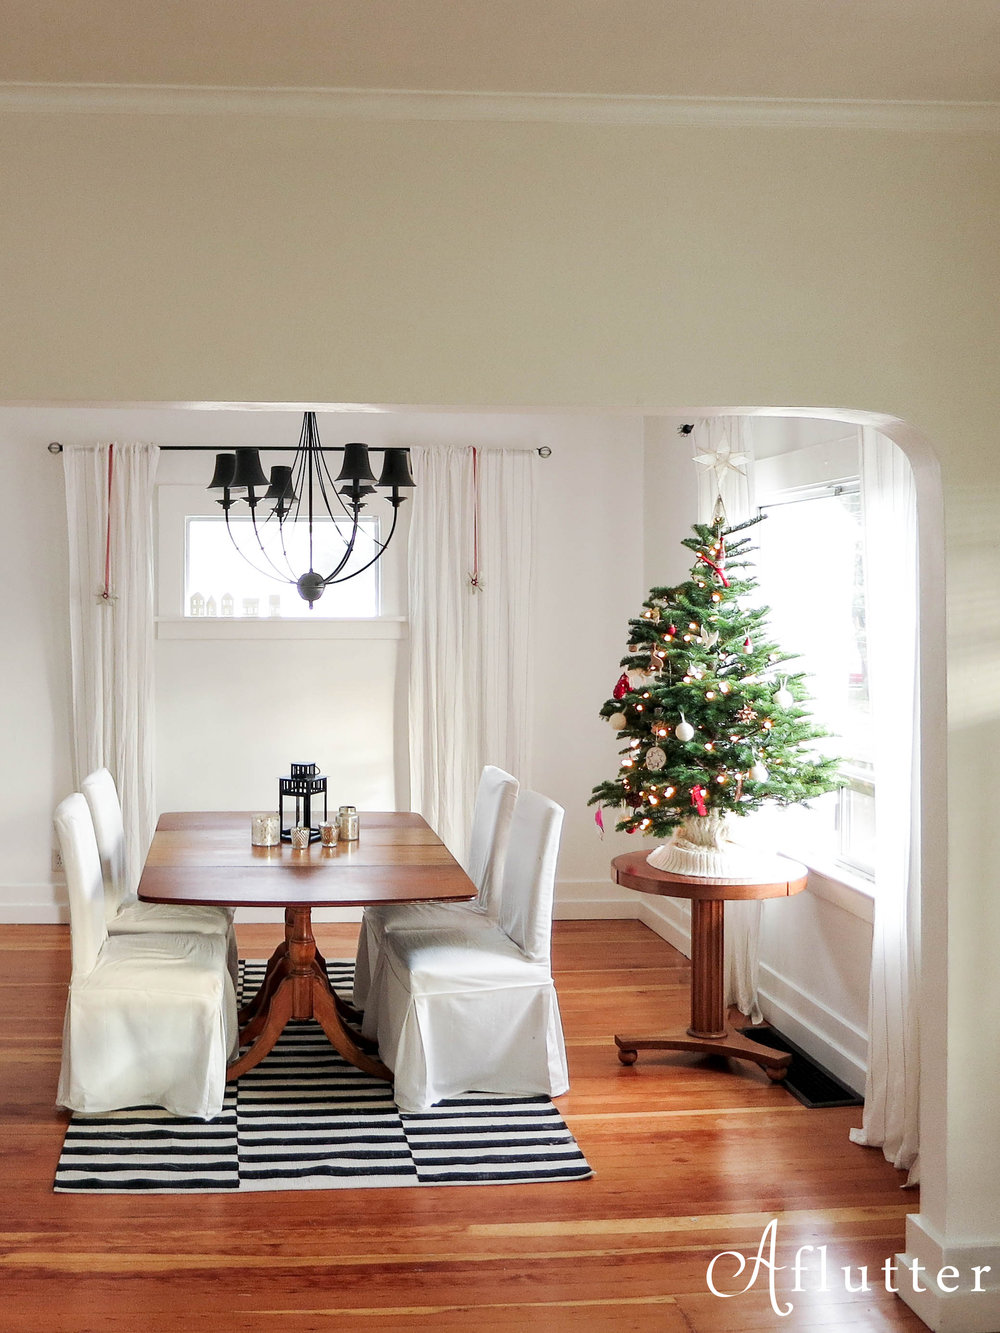 Christmas-Dining-Room-2-of-8-Copy.jpg